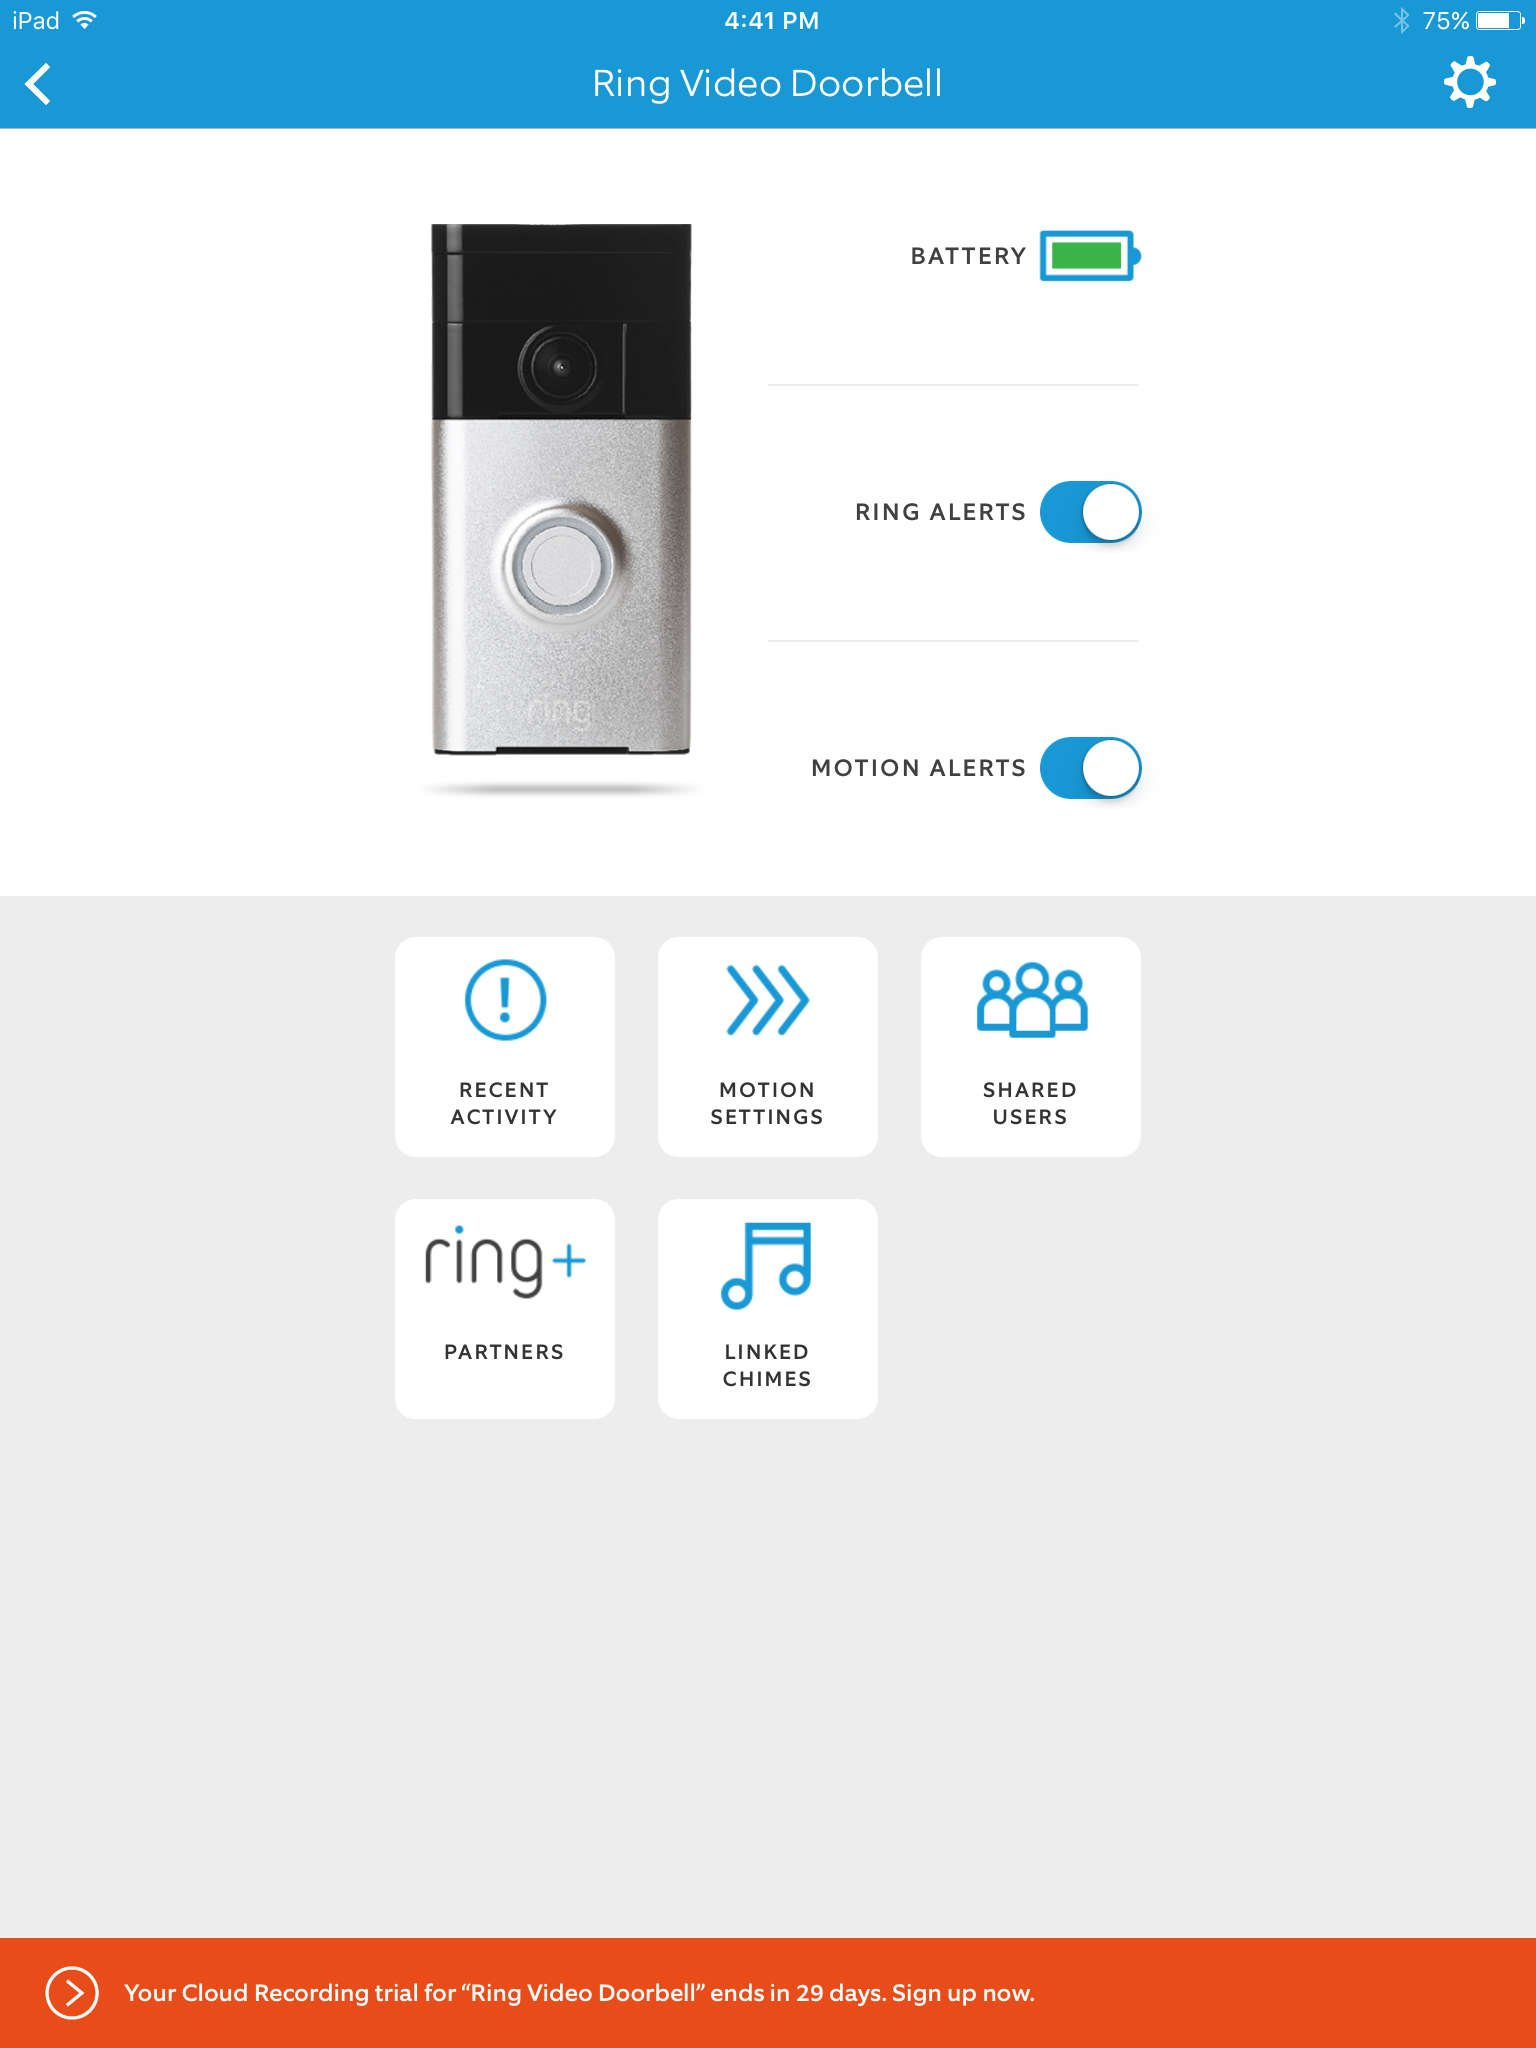 Best Video Doorbell Reviews Skybell Hd Vs Ring Pro 2 Wiring Up Menu